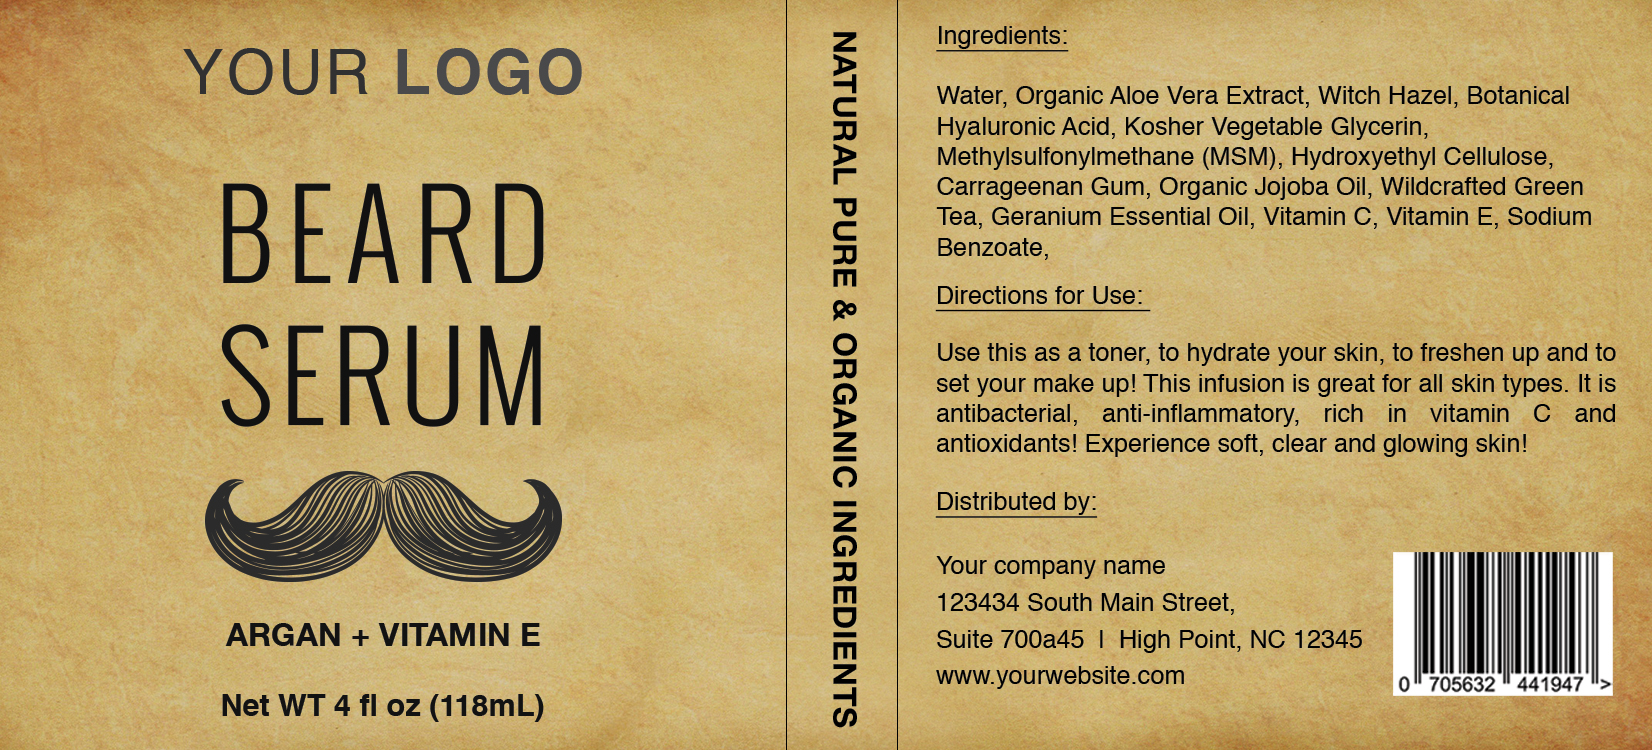 beard serum label template